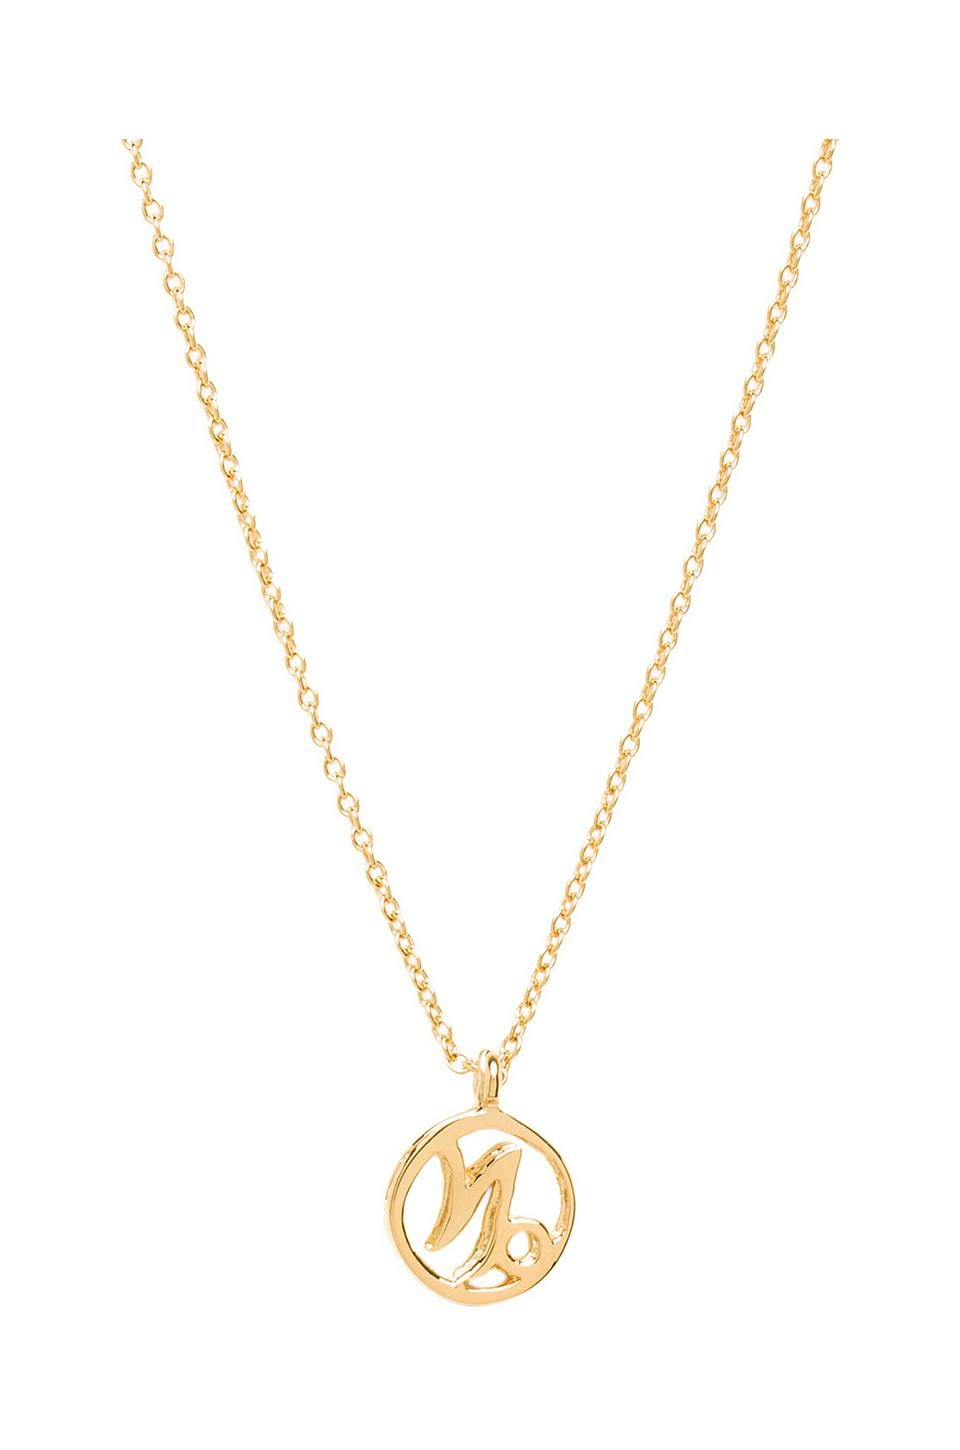 symbol necklace with capricorn a silver best pendant the zodiac product inch sterling